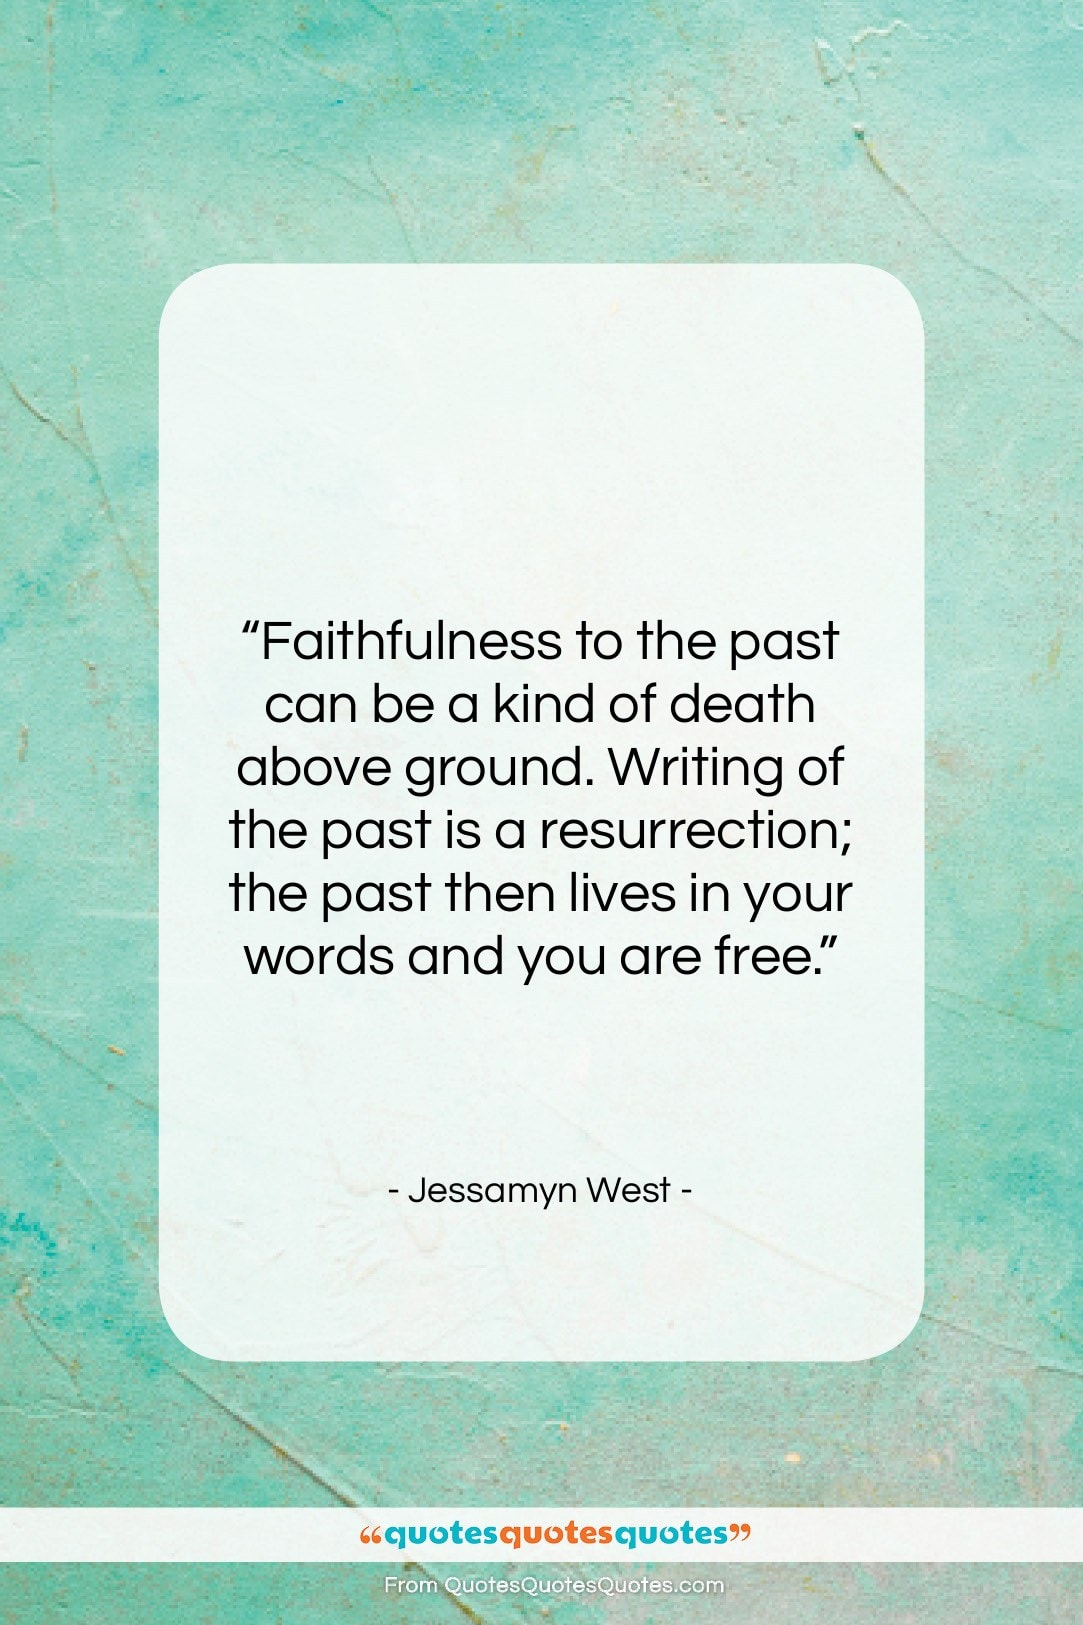 """Jessamyn West quote: """"Faithfulness to the past can be a…""""- at QuotesQuotesQuotes.com"""